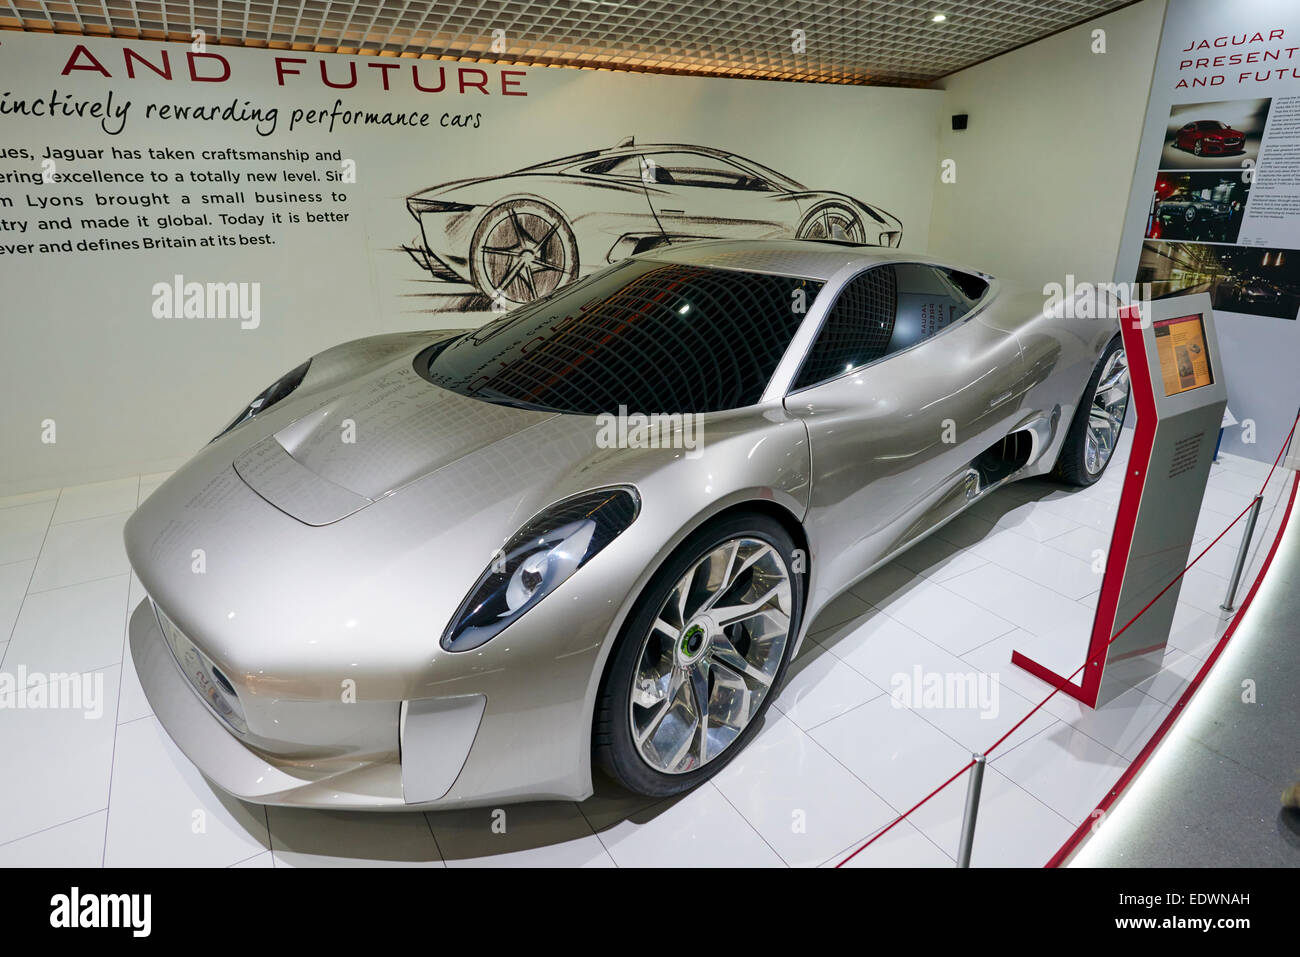 The Jaguar Concept Car C-X75 Display At The Coventry Transport ...